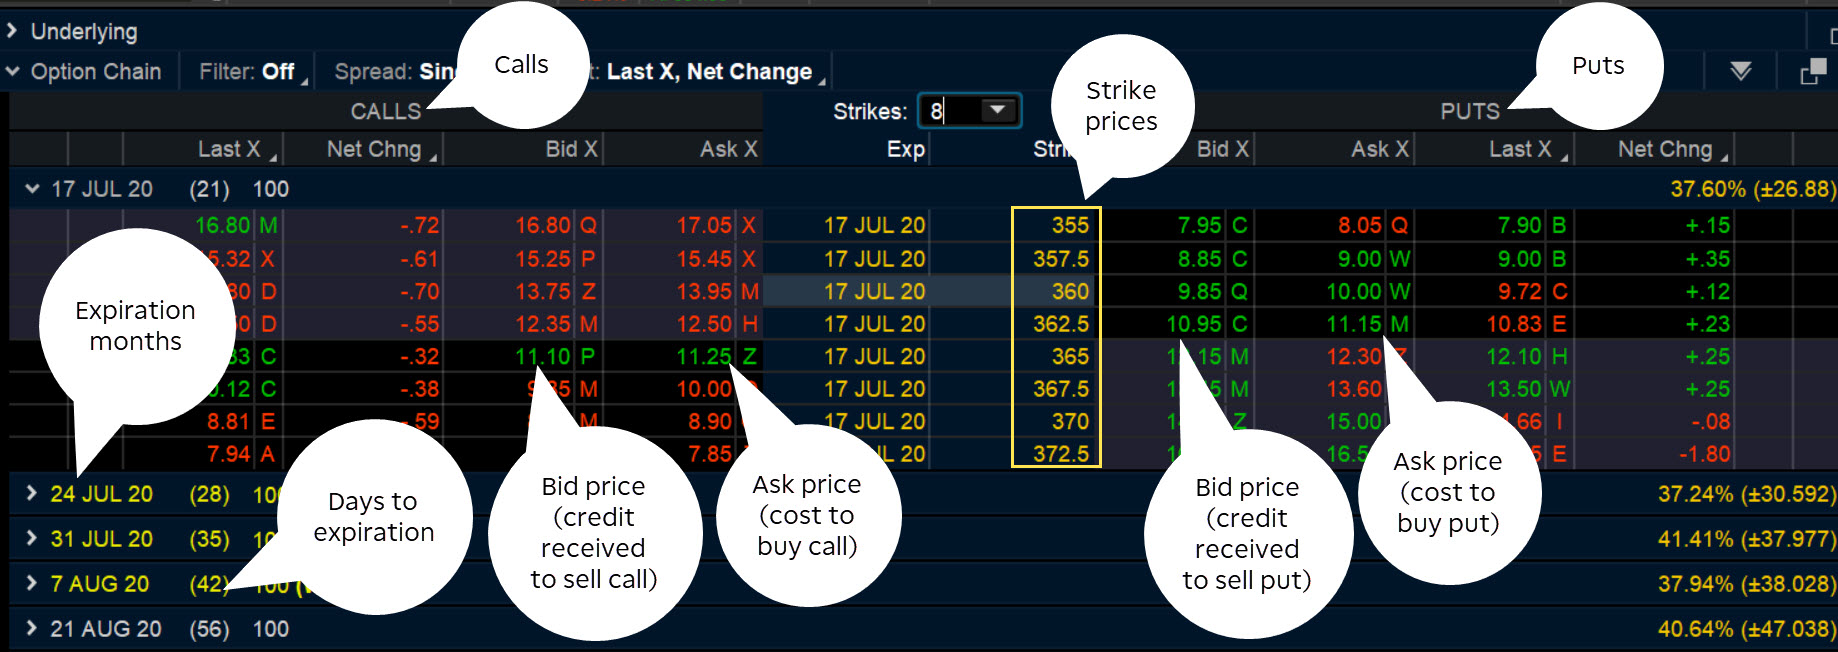 Option chain of puts and calls on thinkorswim